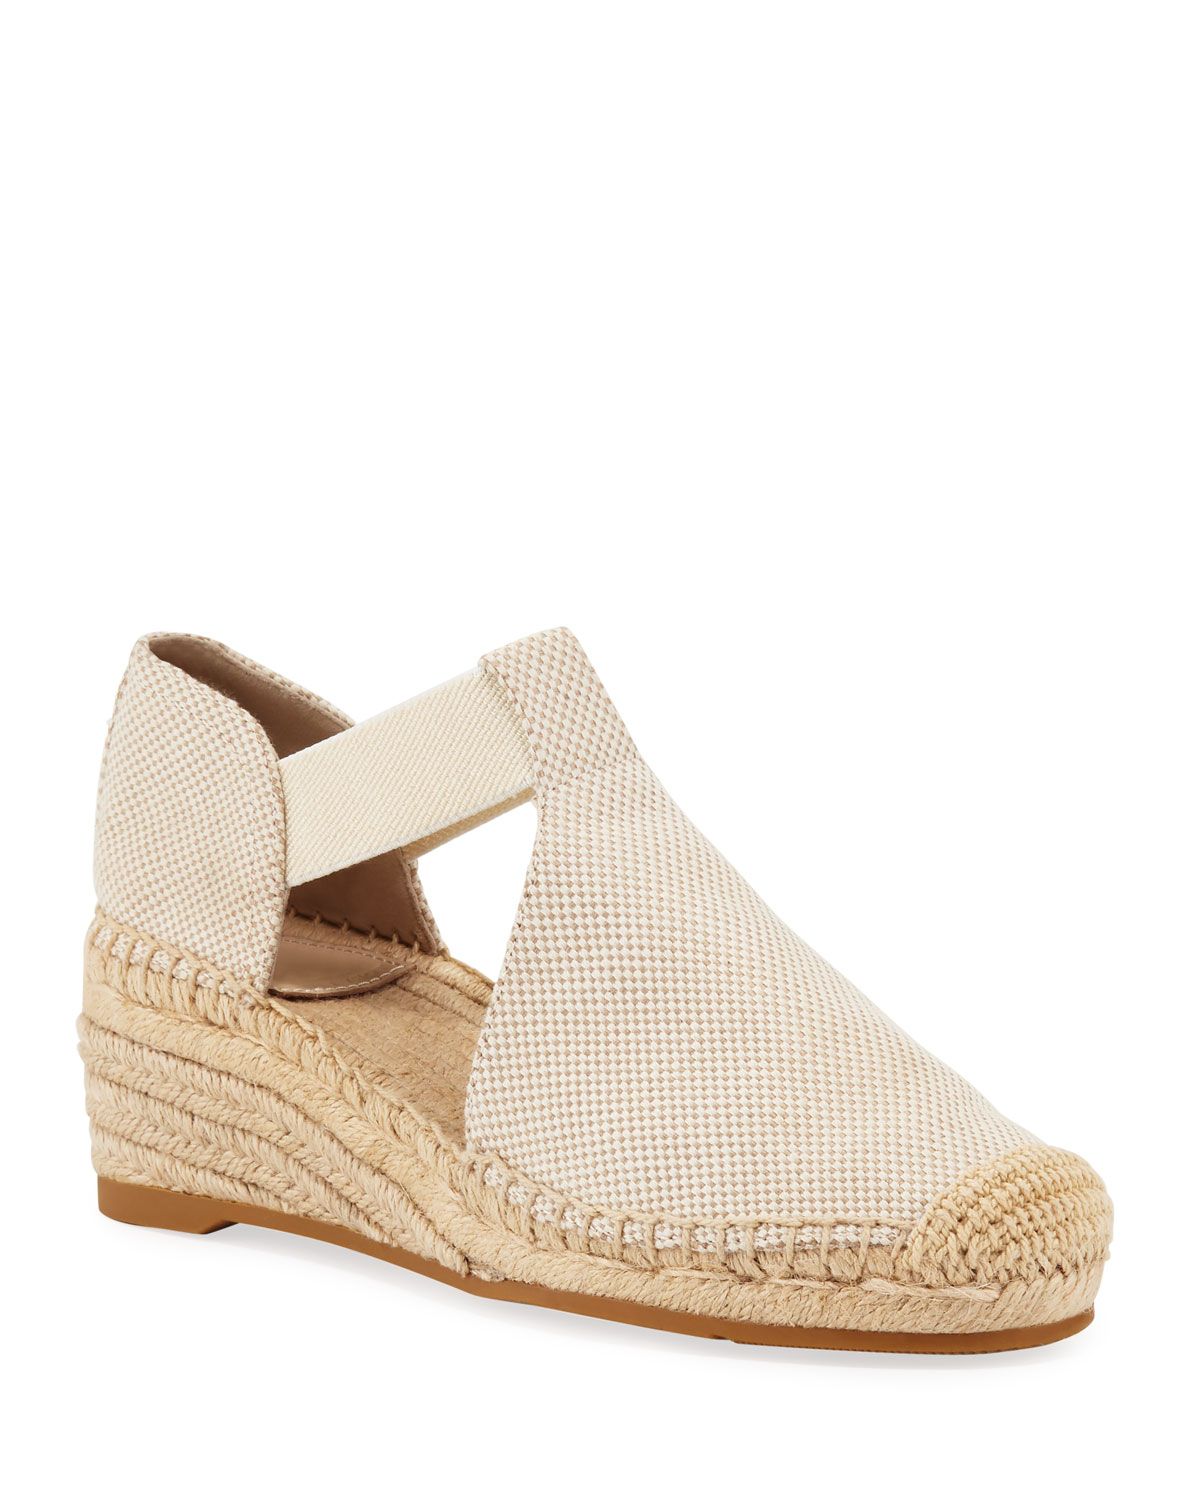 e7ce775524f Tory Burch Catalina Woven Wedge Espadrilles